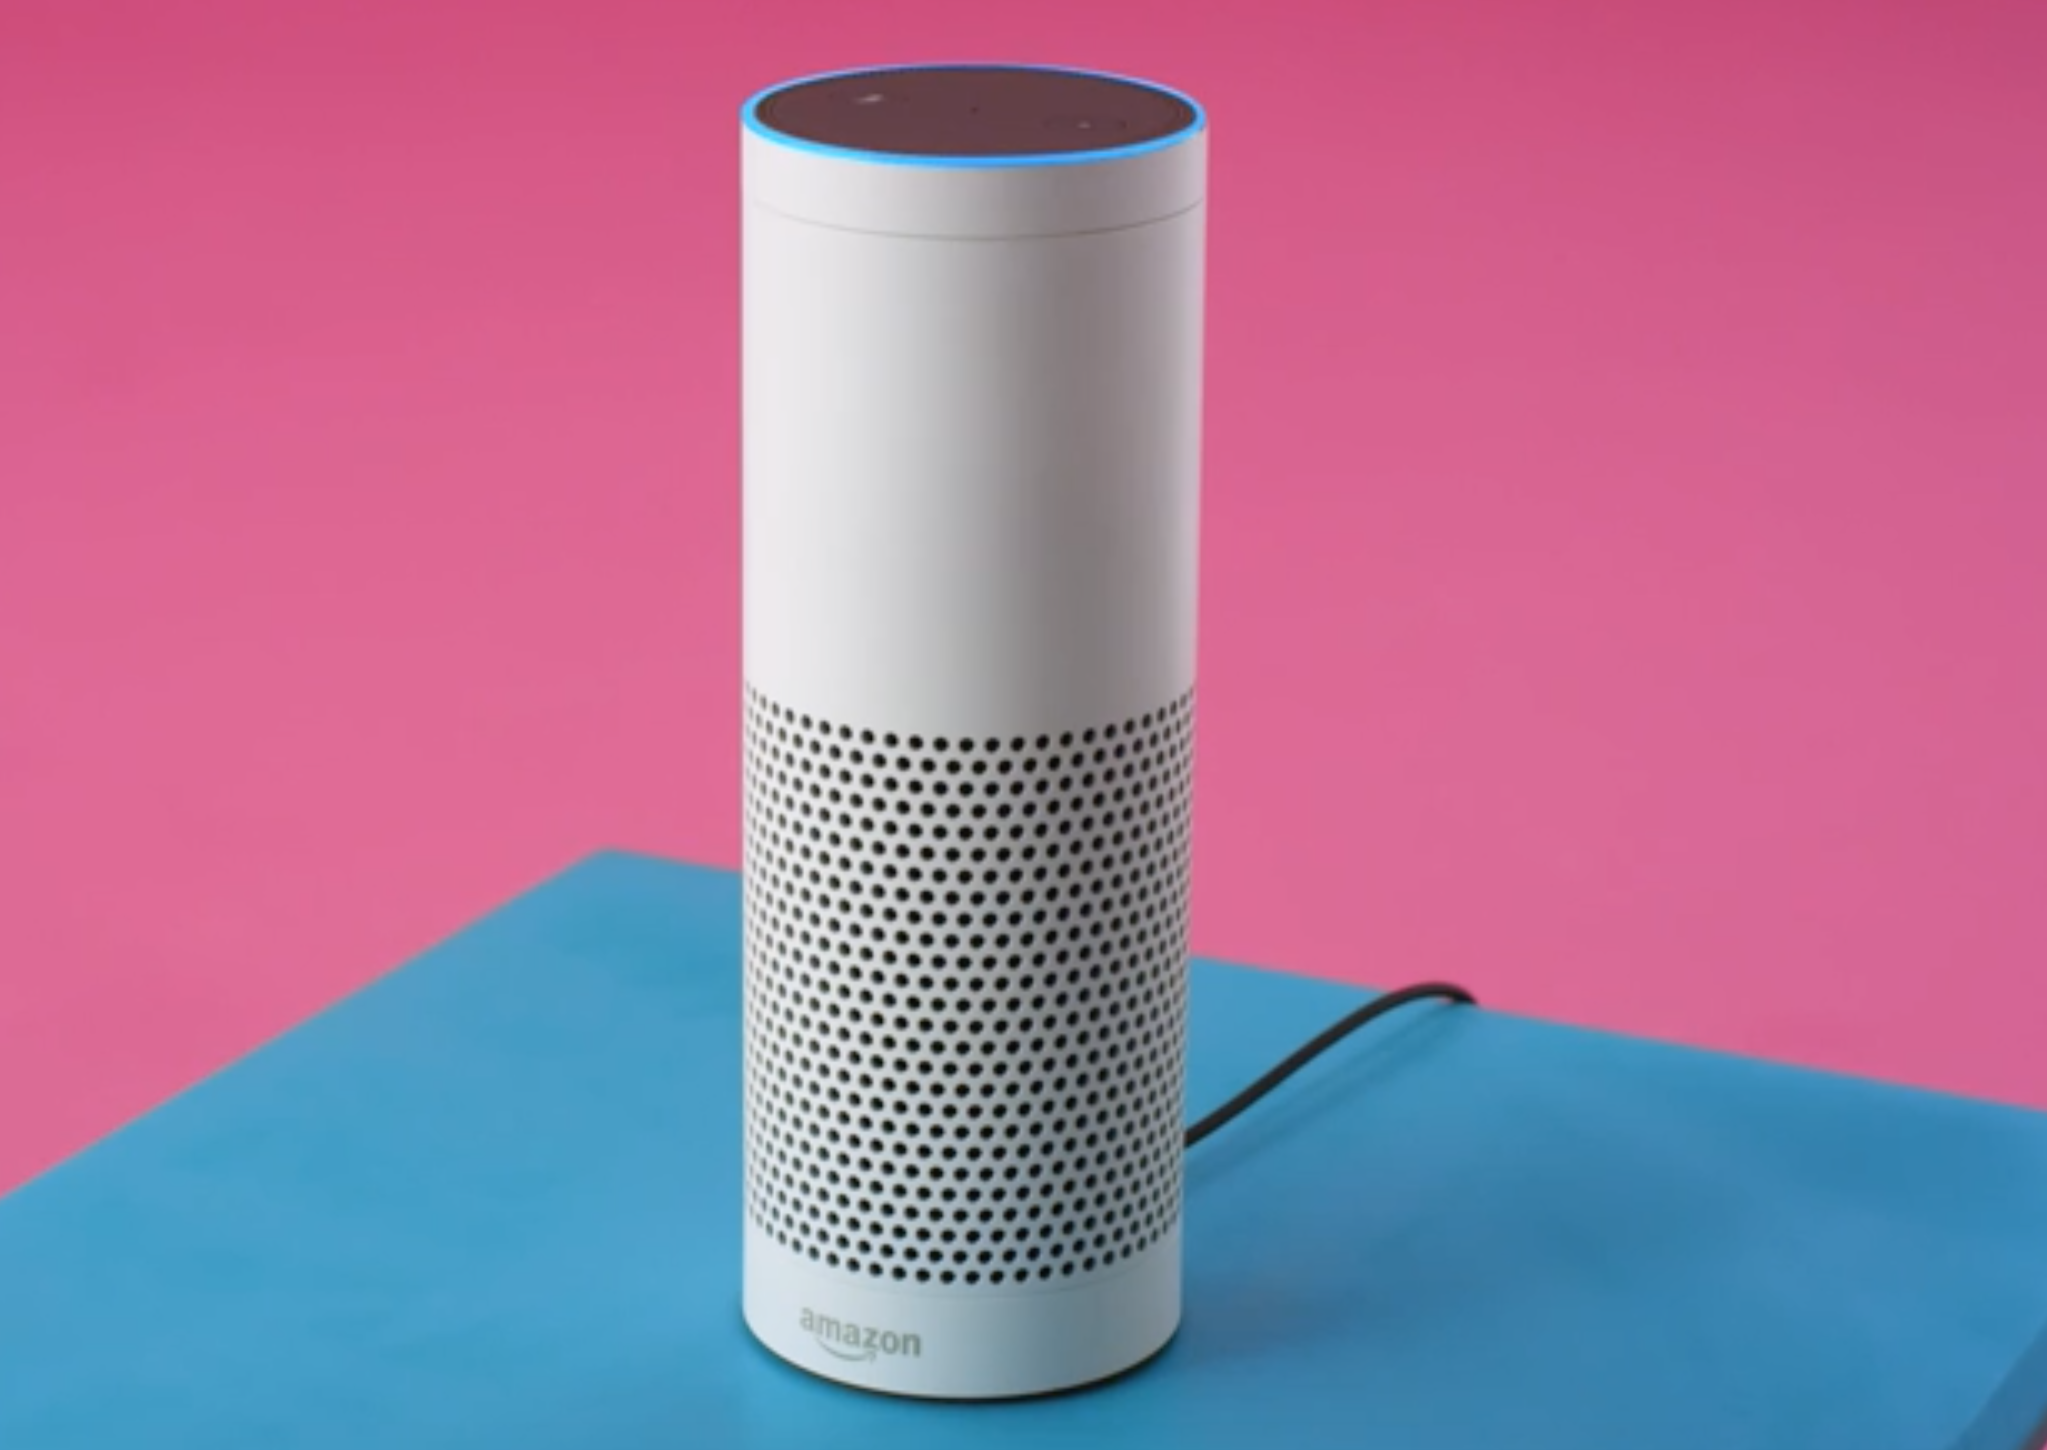 Alexa can now find and play music for over 500 'activities'